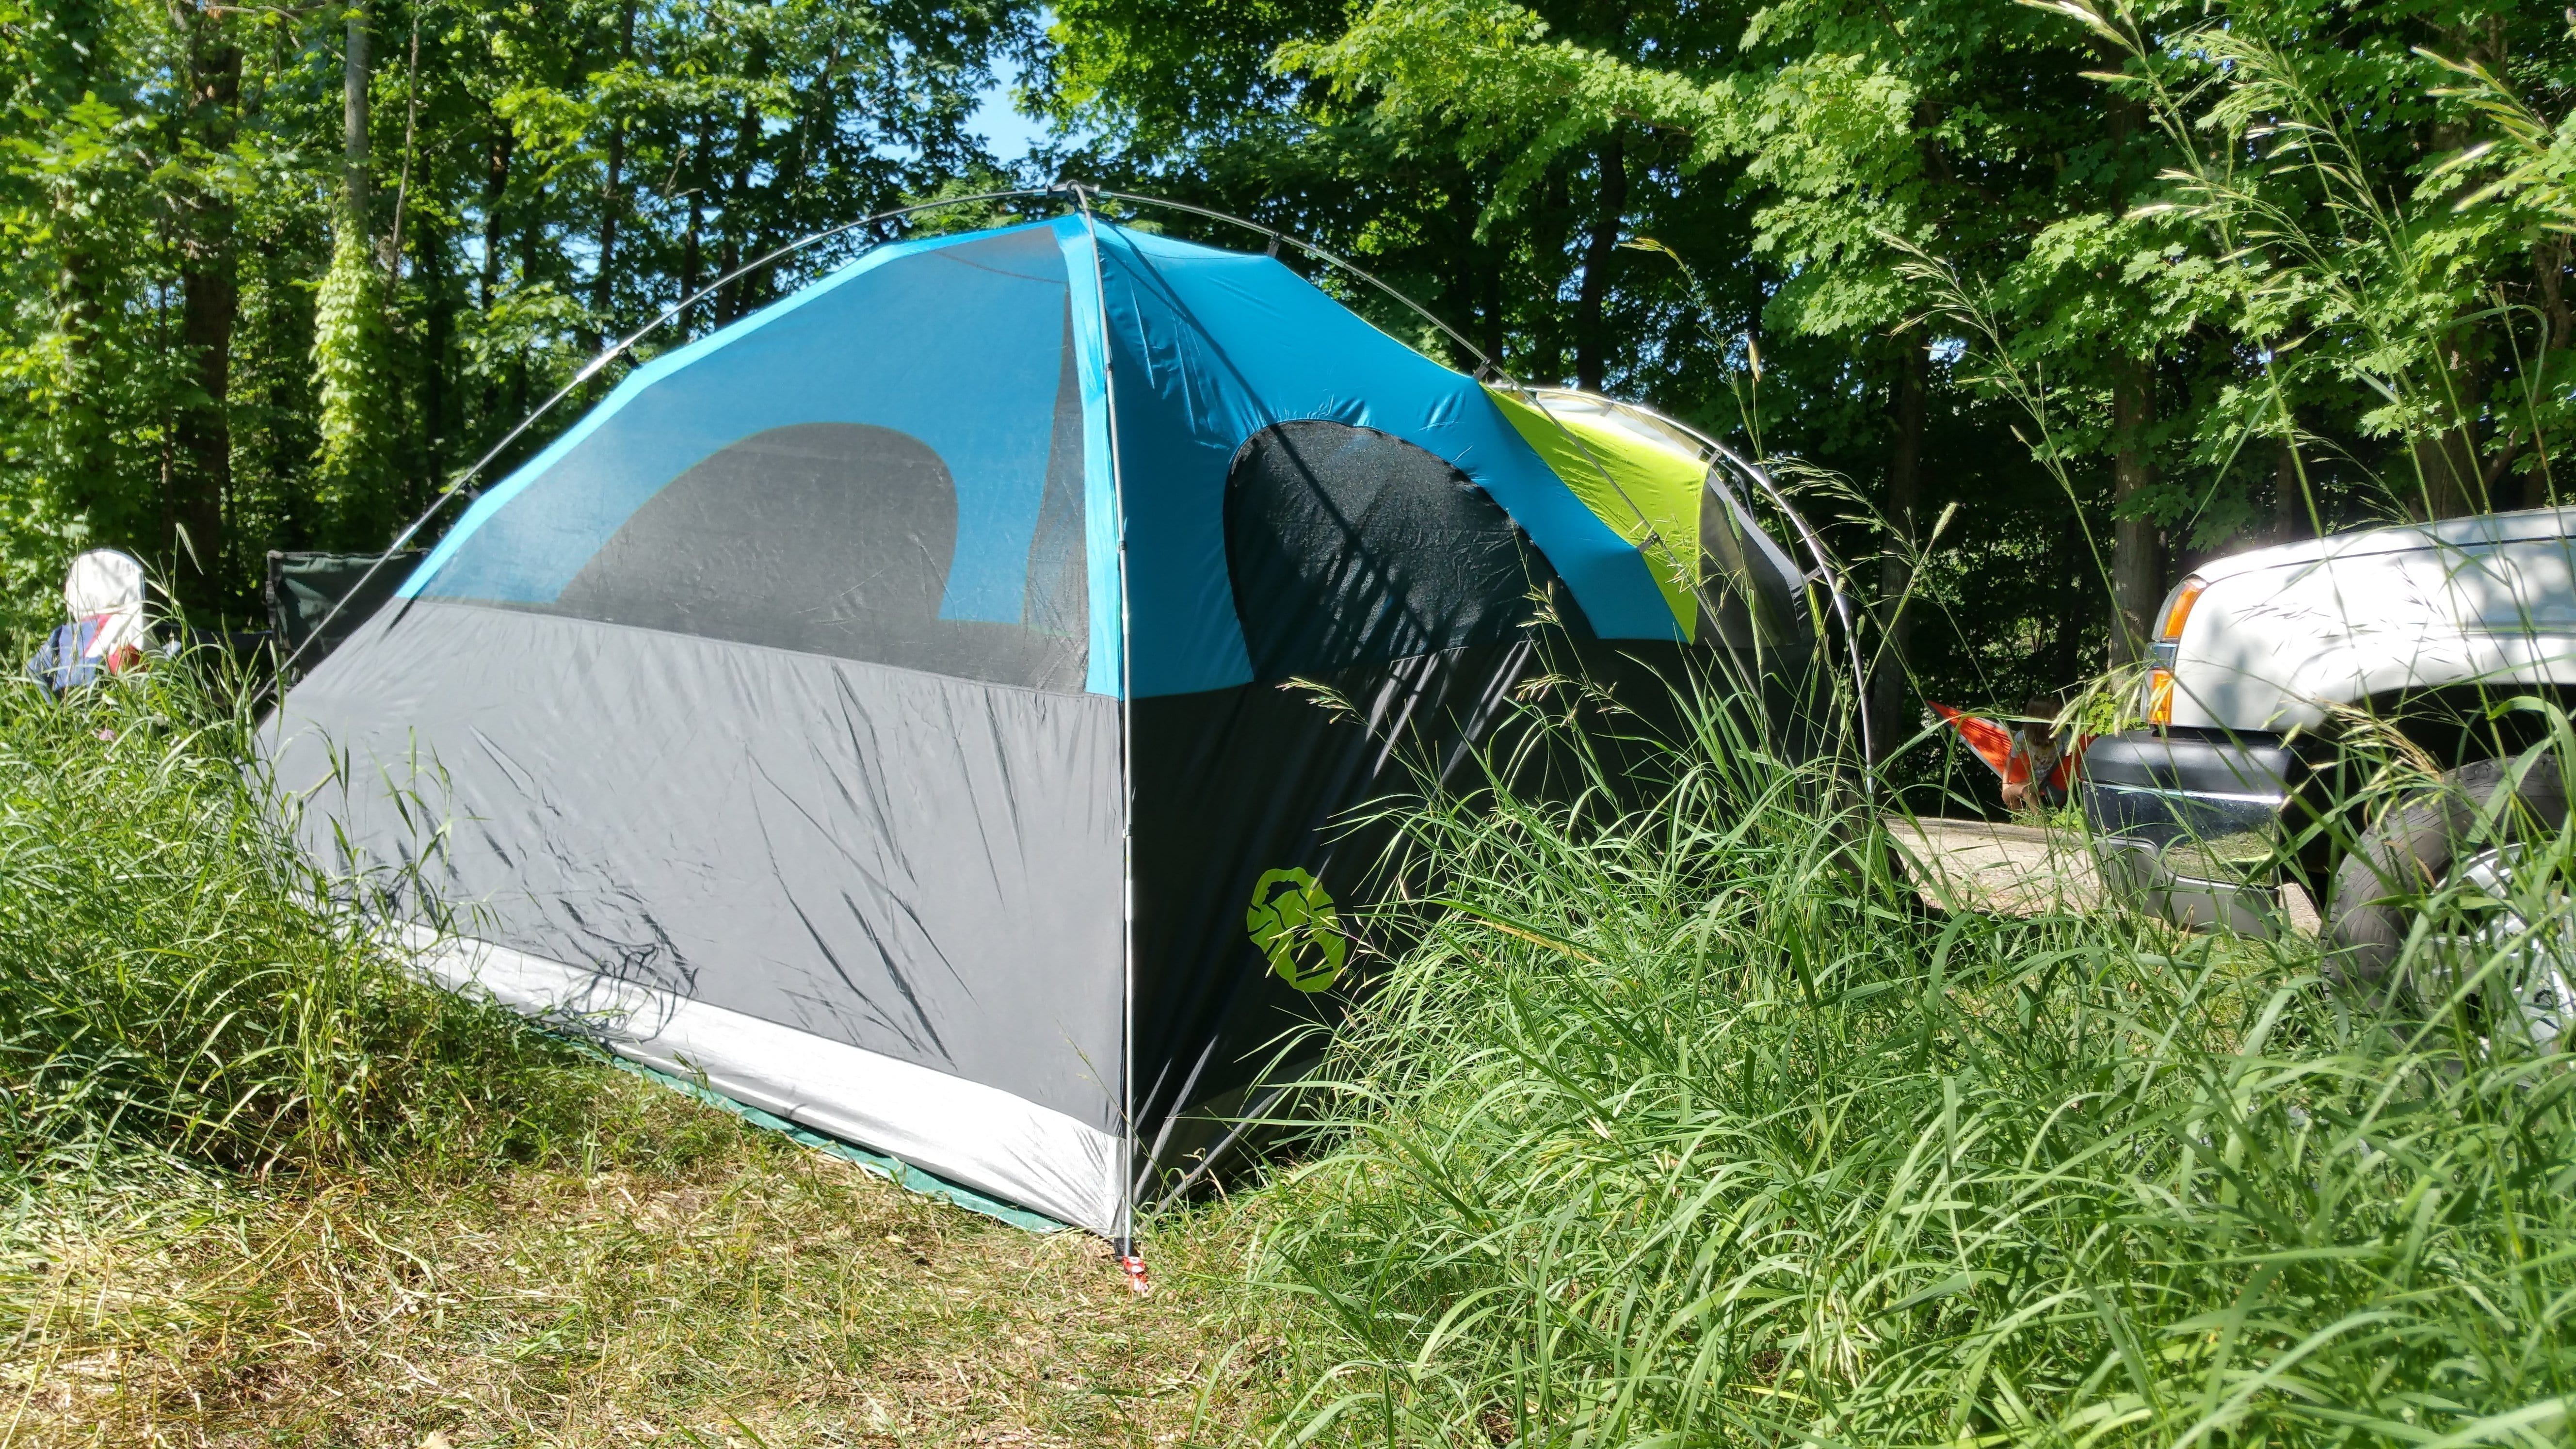 Coleman Carlsbad Fast Pitch 6 Person Tent & Coleman Carlsbad Fast Pitch 6 Person Tent Review - Active Gear Review